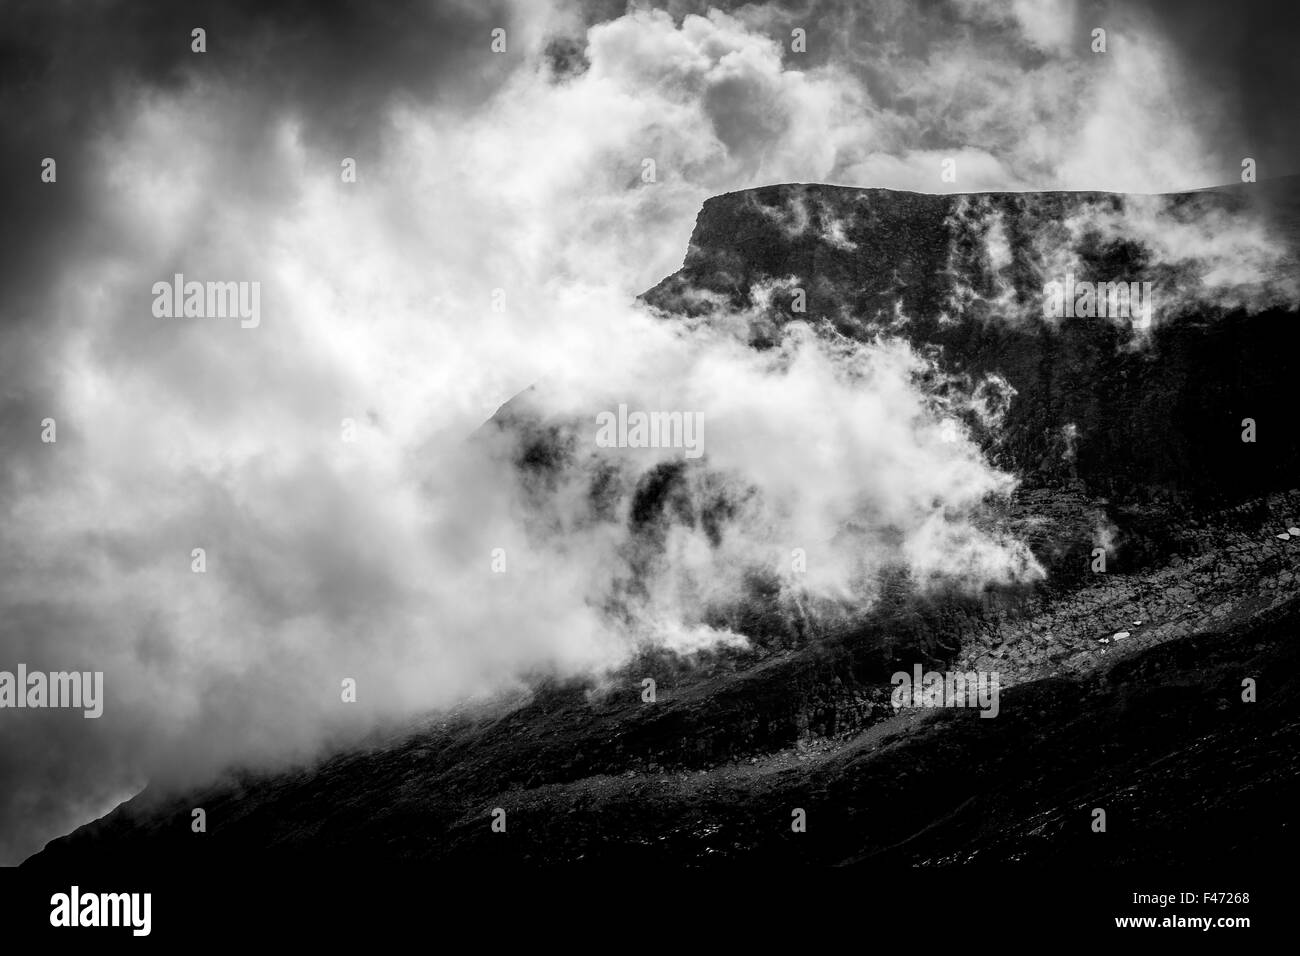 A mountain with clouds in Norway - Stock Image